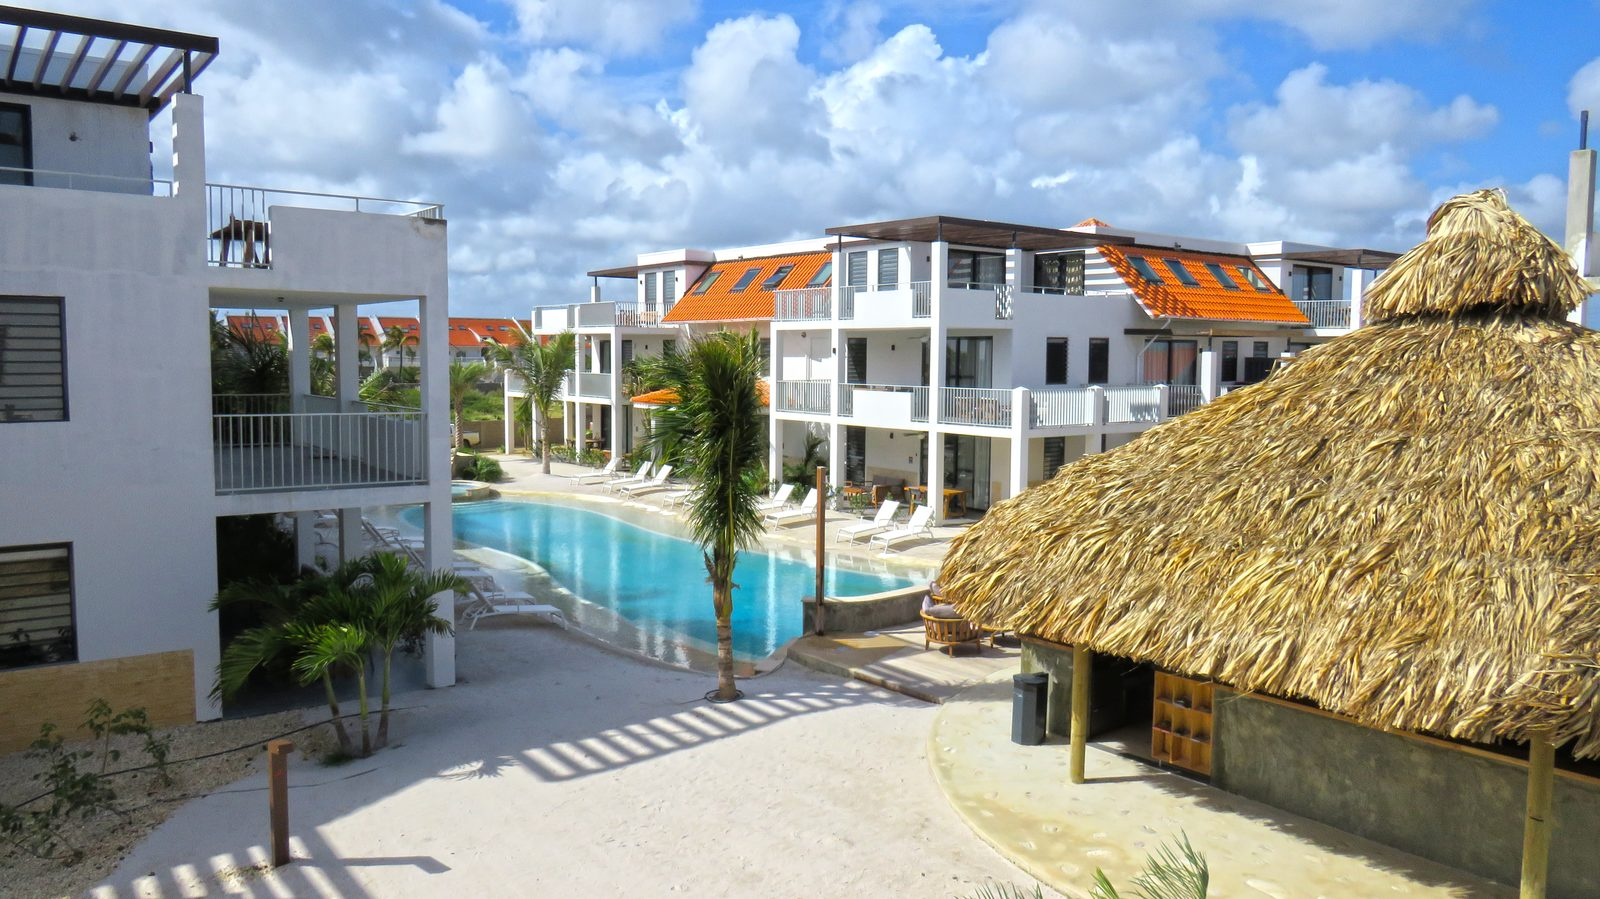 While on Bonaire, you can stay at Resort Bonaire. Luxurious apartments equipped with all the comforts you could wish for. View our available accommodations!